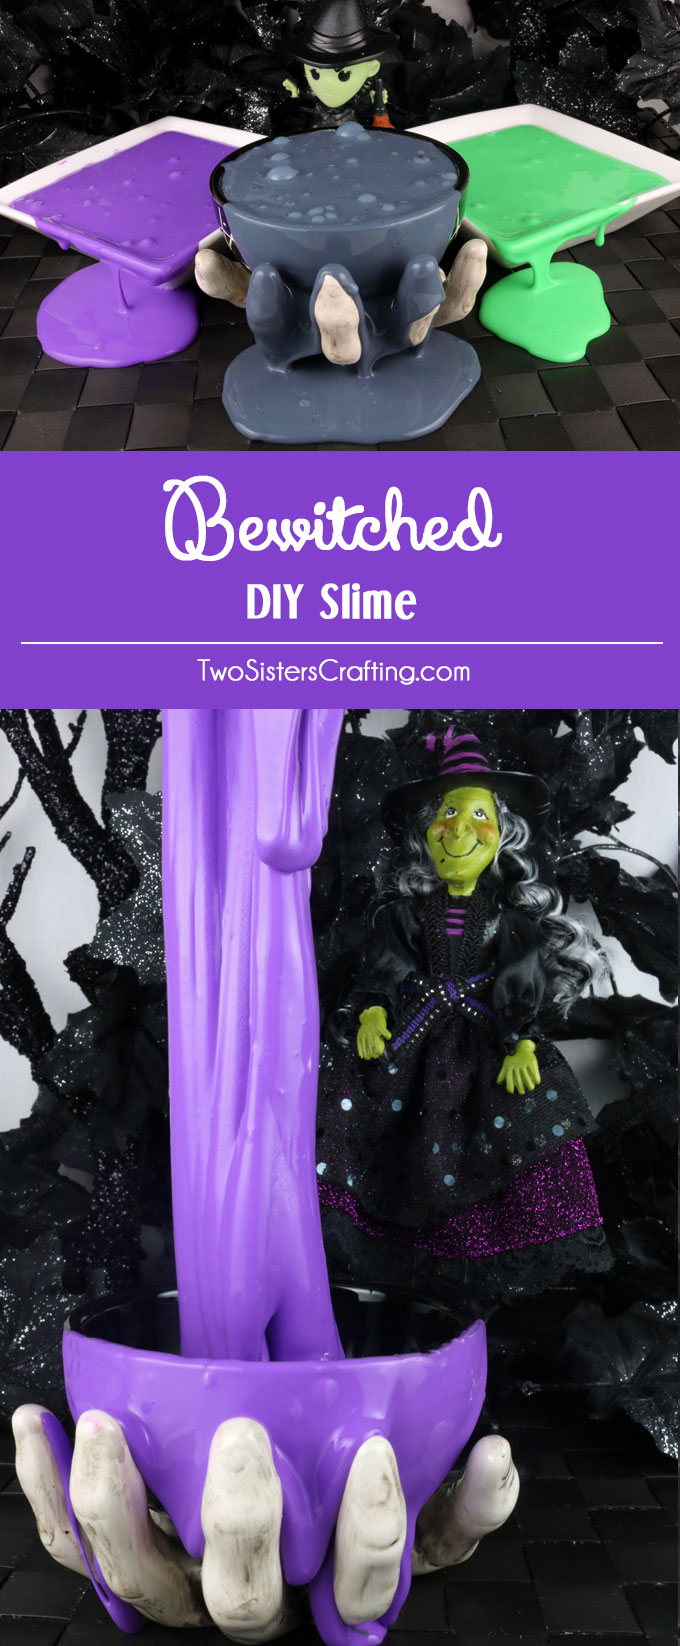 Bewitched DIY Slime - fun and colorful homemade GAK that would be great as a Halloween Party Favor or a Halloween themed after-school activity for the kids. We have step by step directions on how to make this easy to make DIY Halloween Gak. The kids will love playing with this ooey, gooey Halloween sensory activity. Follow us for more fun Halloween Craft Ideas.